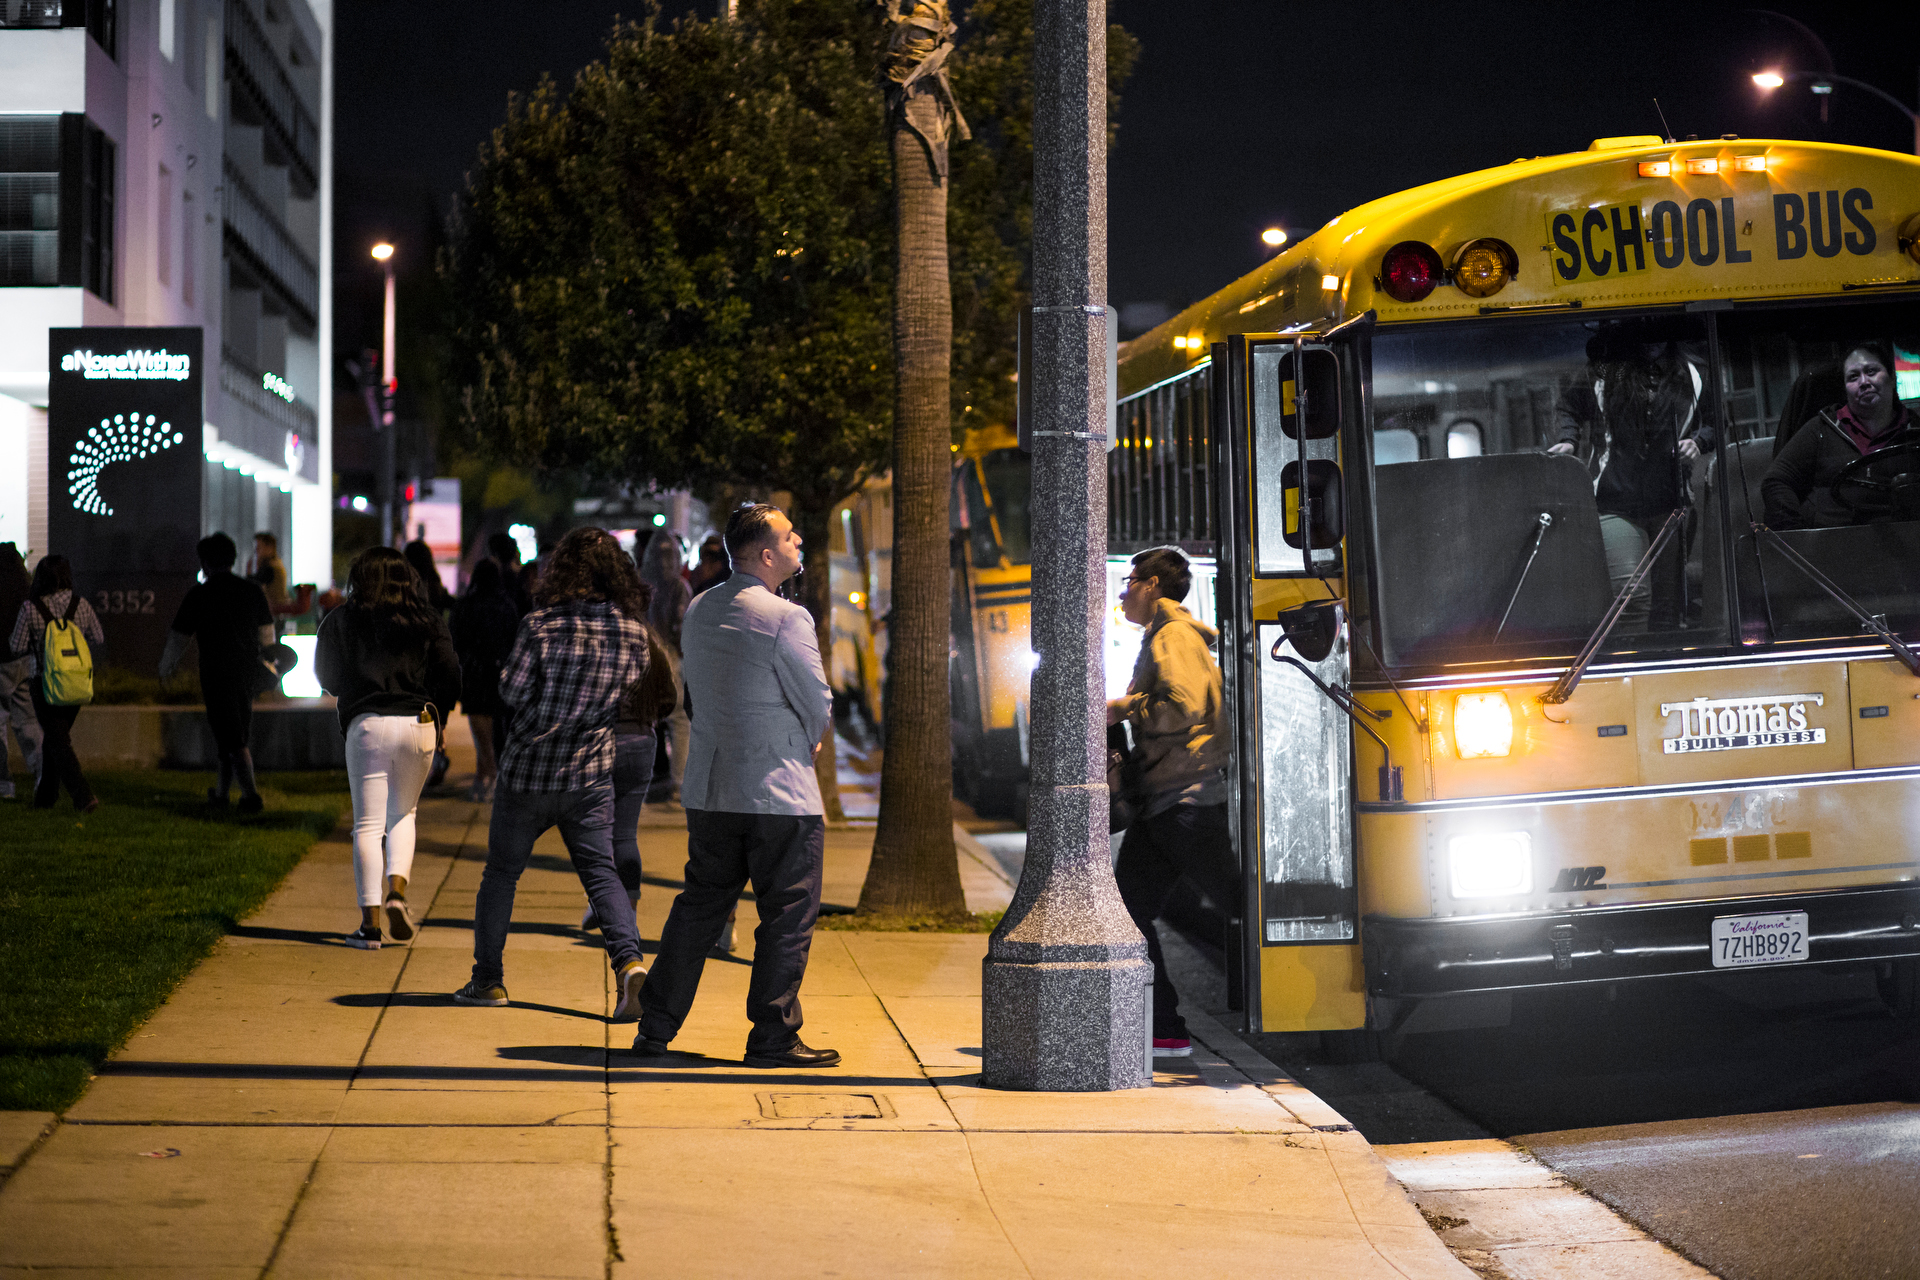 A bus drops off people in front of A Noise Within.